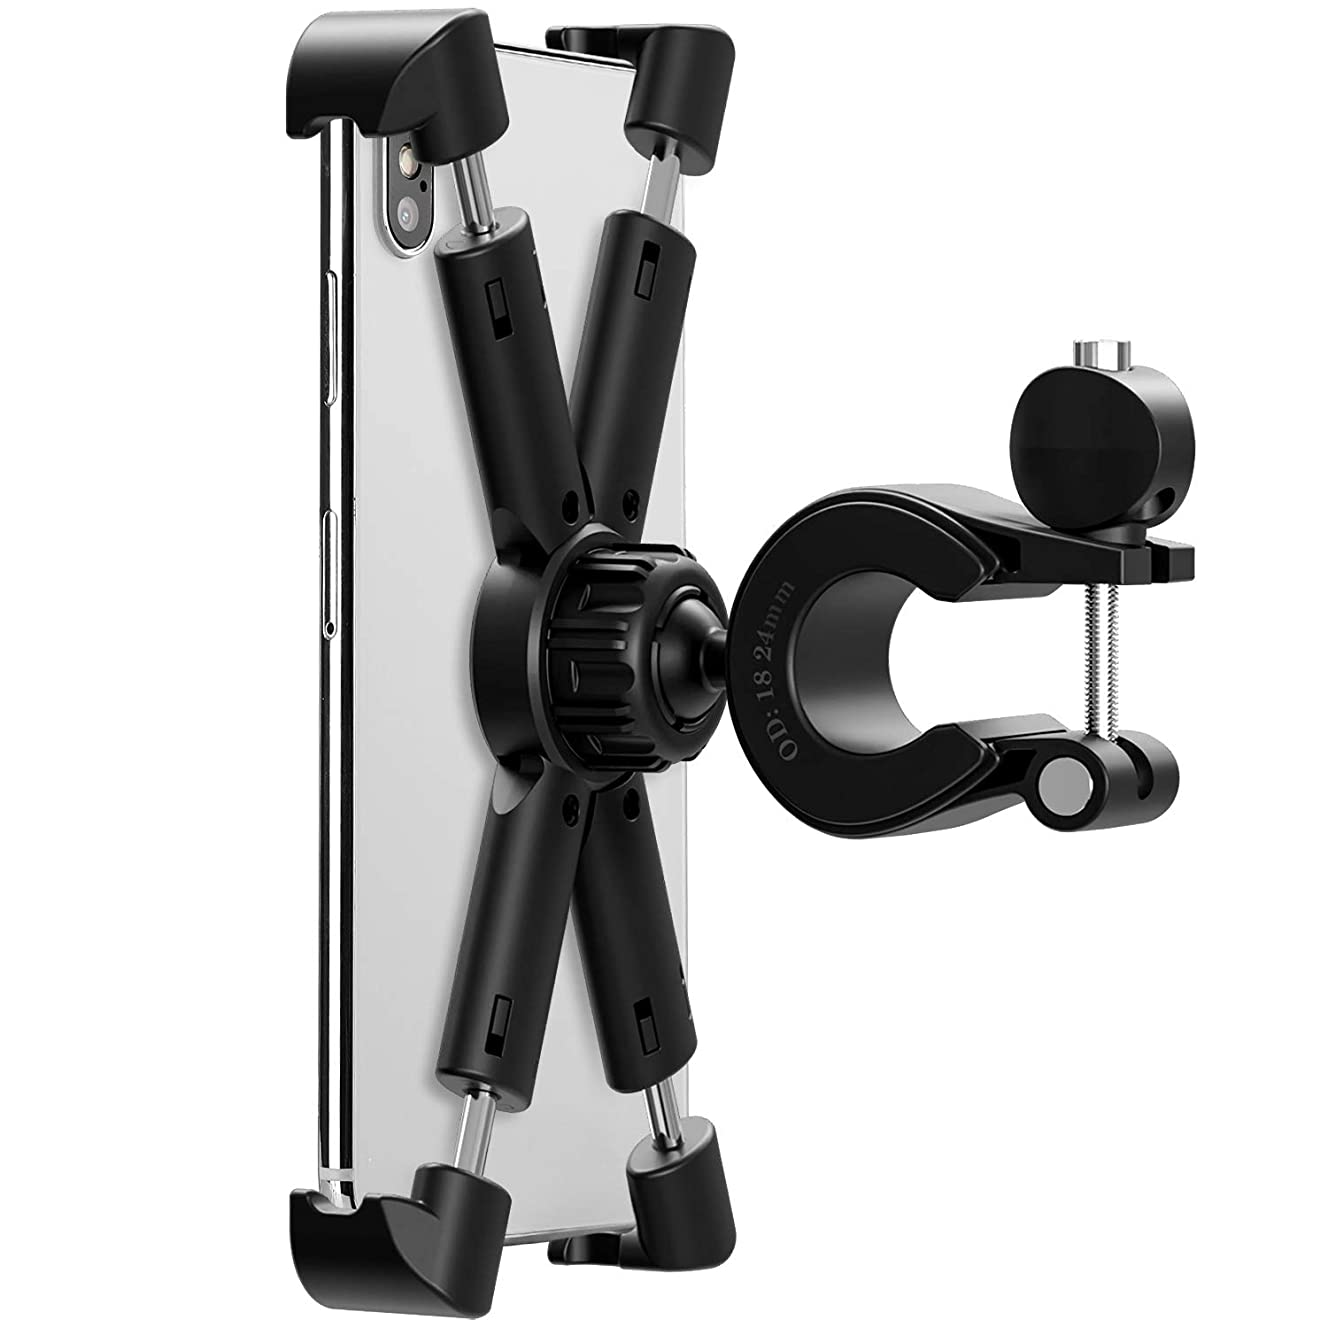 Bike Phone Mount Holder, Universal Cell Phone Bicycle Rack Handlebar,Bicycle Cradle for iPhone 6s 7 8 Plus X Gaxlxy S5 S6 S7,Note 9 8 7 6 5 Motorola, Nexus, LG Android Smartphone with 360 Degree Rotat